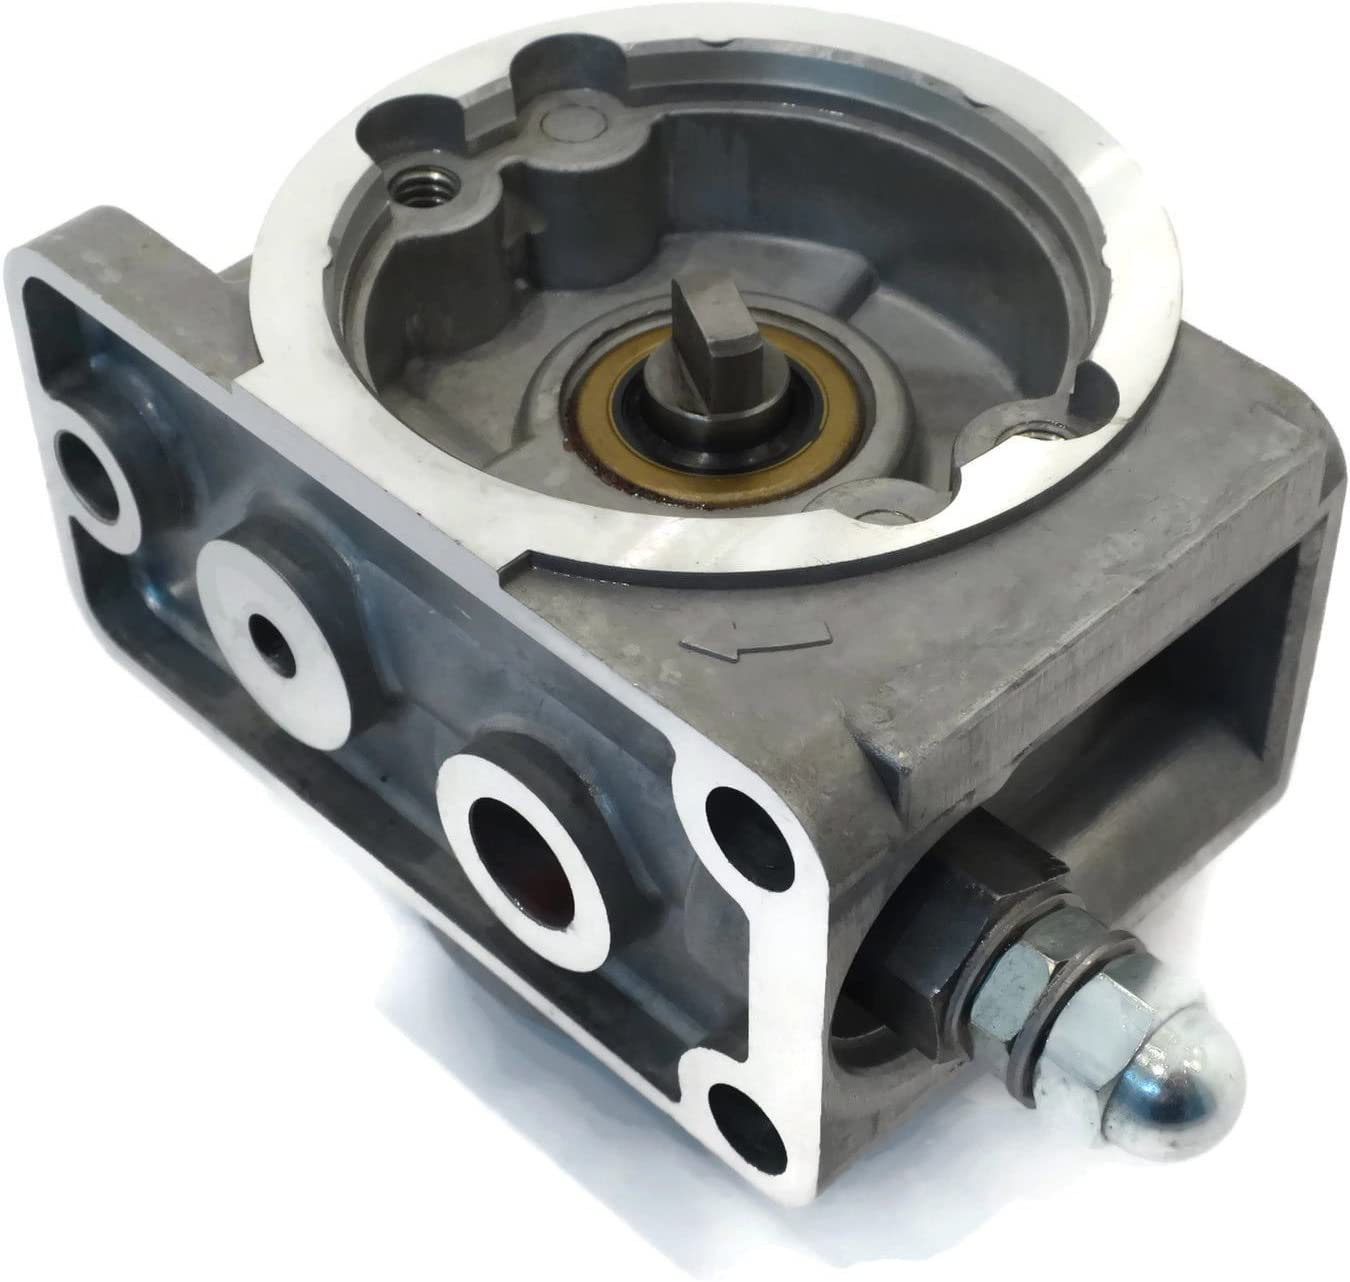 The ROP Shop New Snow Plow Pressure Gear Pump fits Meyer Diamond E-46 E-47 E-47H Pumps Blade